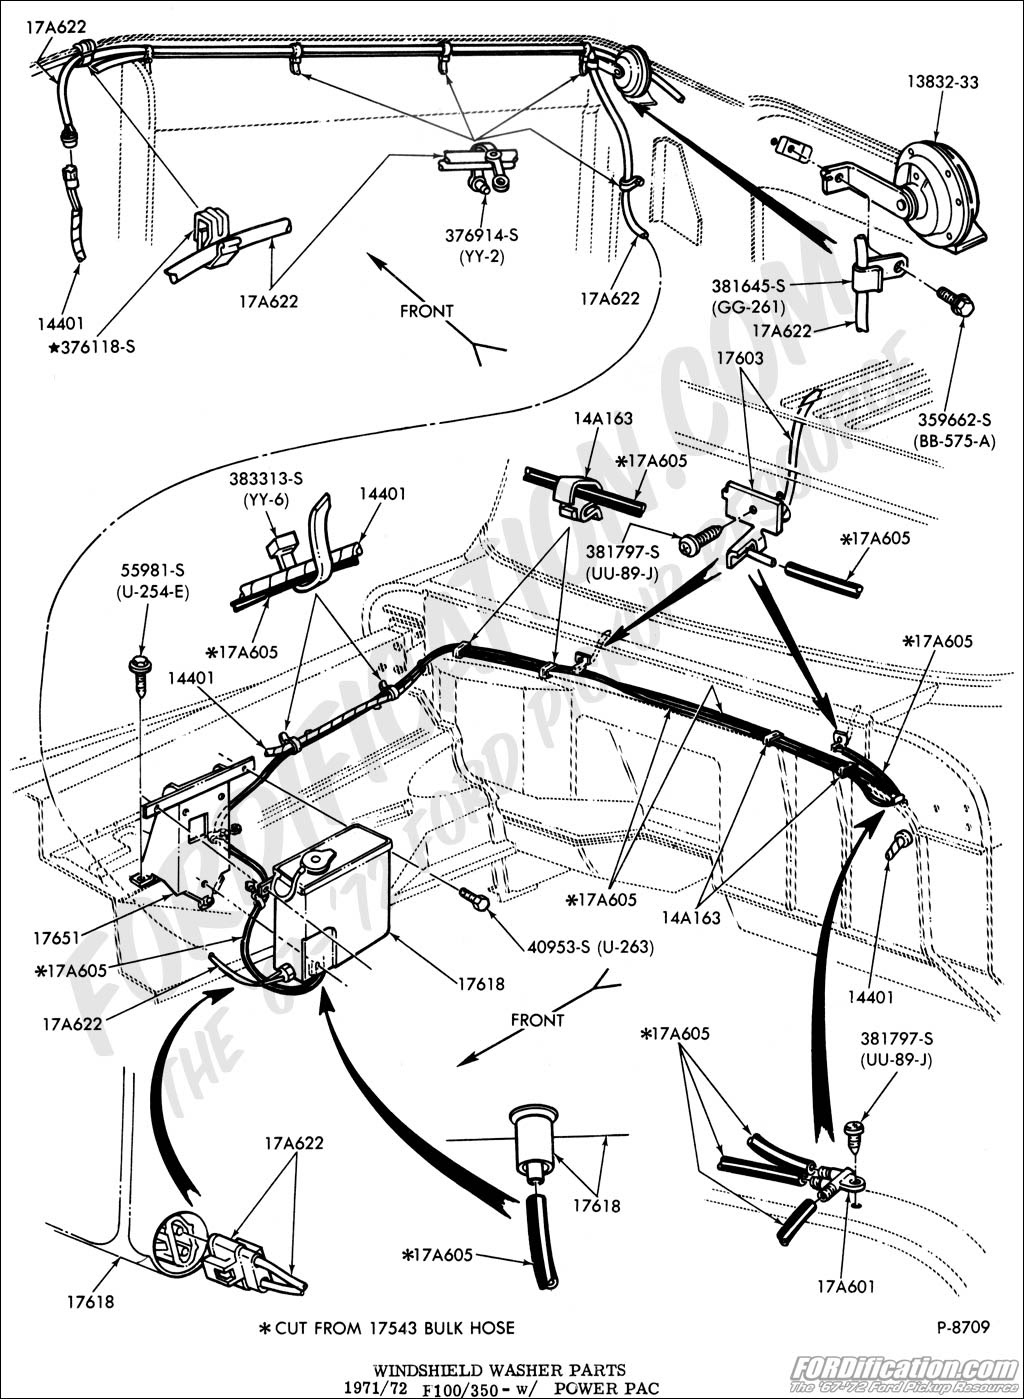 Wiring Diagram 2003 Ford F 250 Transmission Wiring Diagram Approval A Approval A Zaafran It